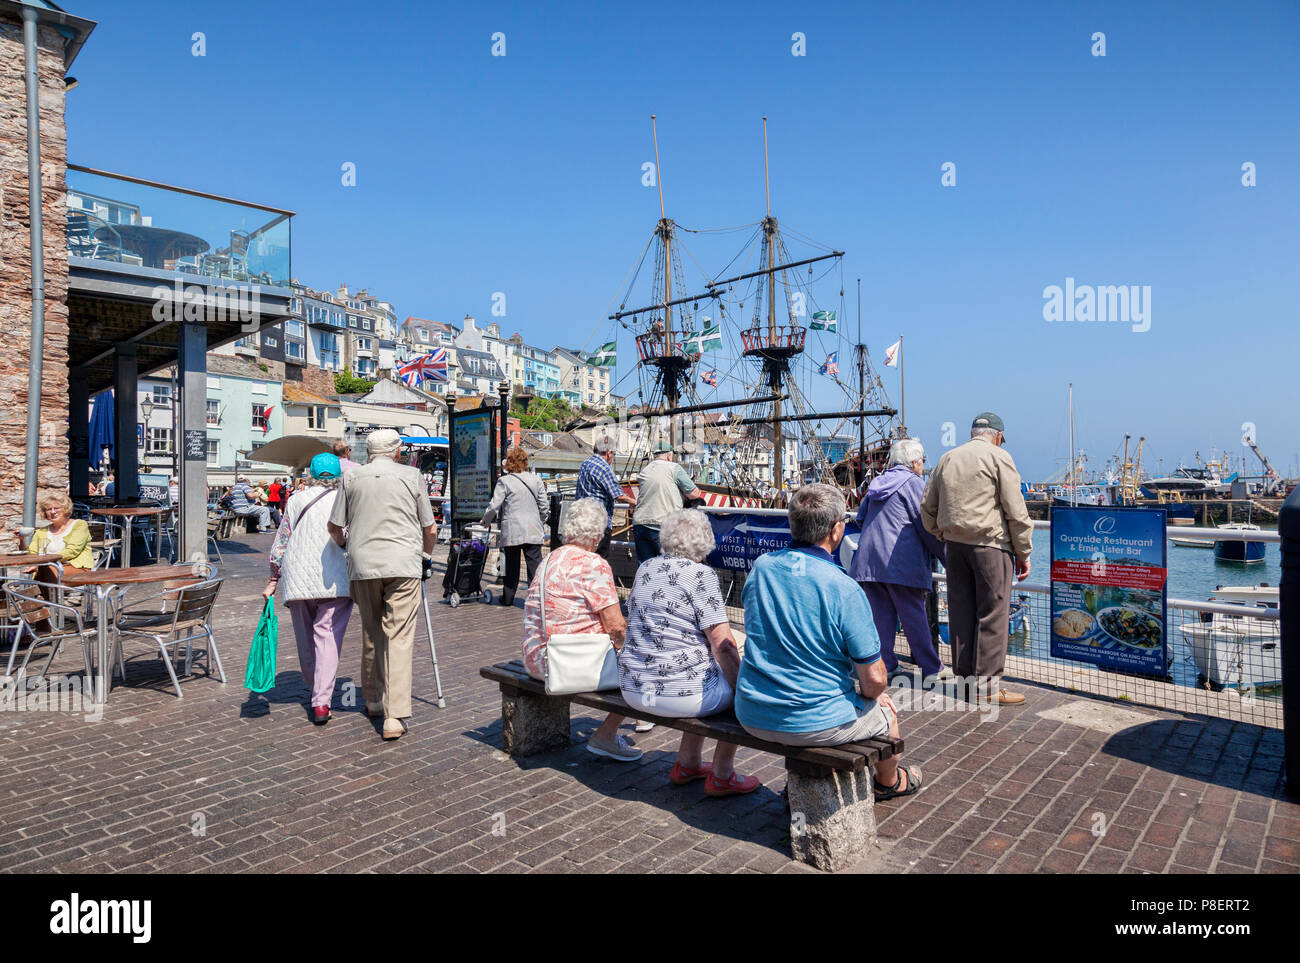 23 May 2018: Brixham, Devon, UK - Senior citizens relaxing on the seafront at Brixham Harbour, with the replica Golden Hind sailing ship. - Stock Image